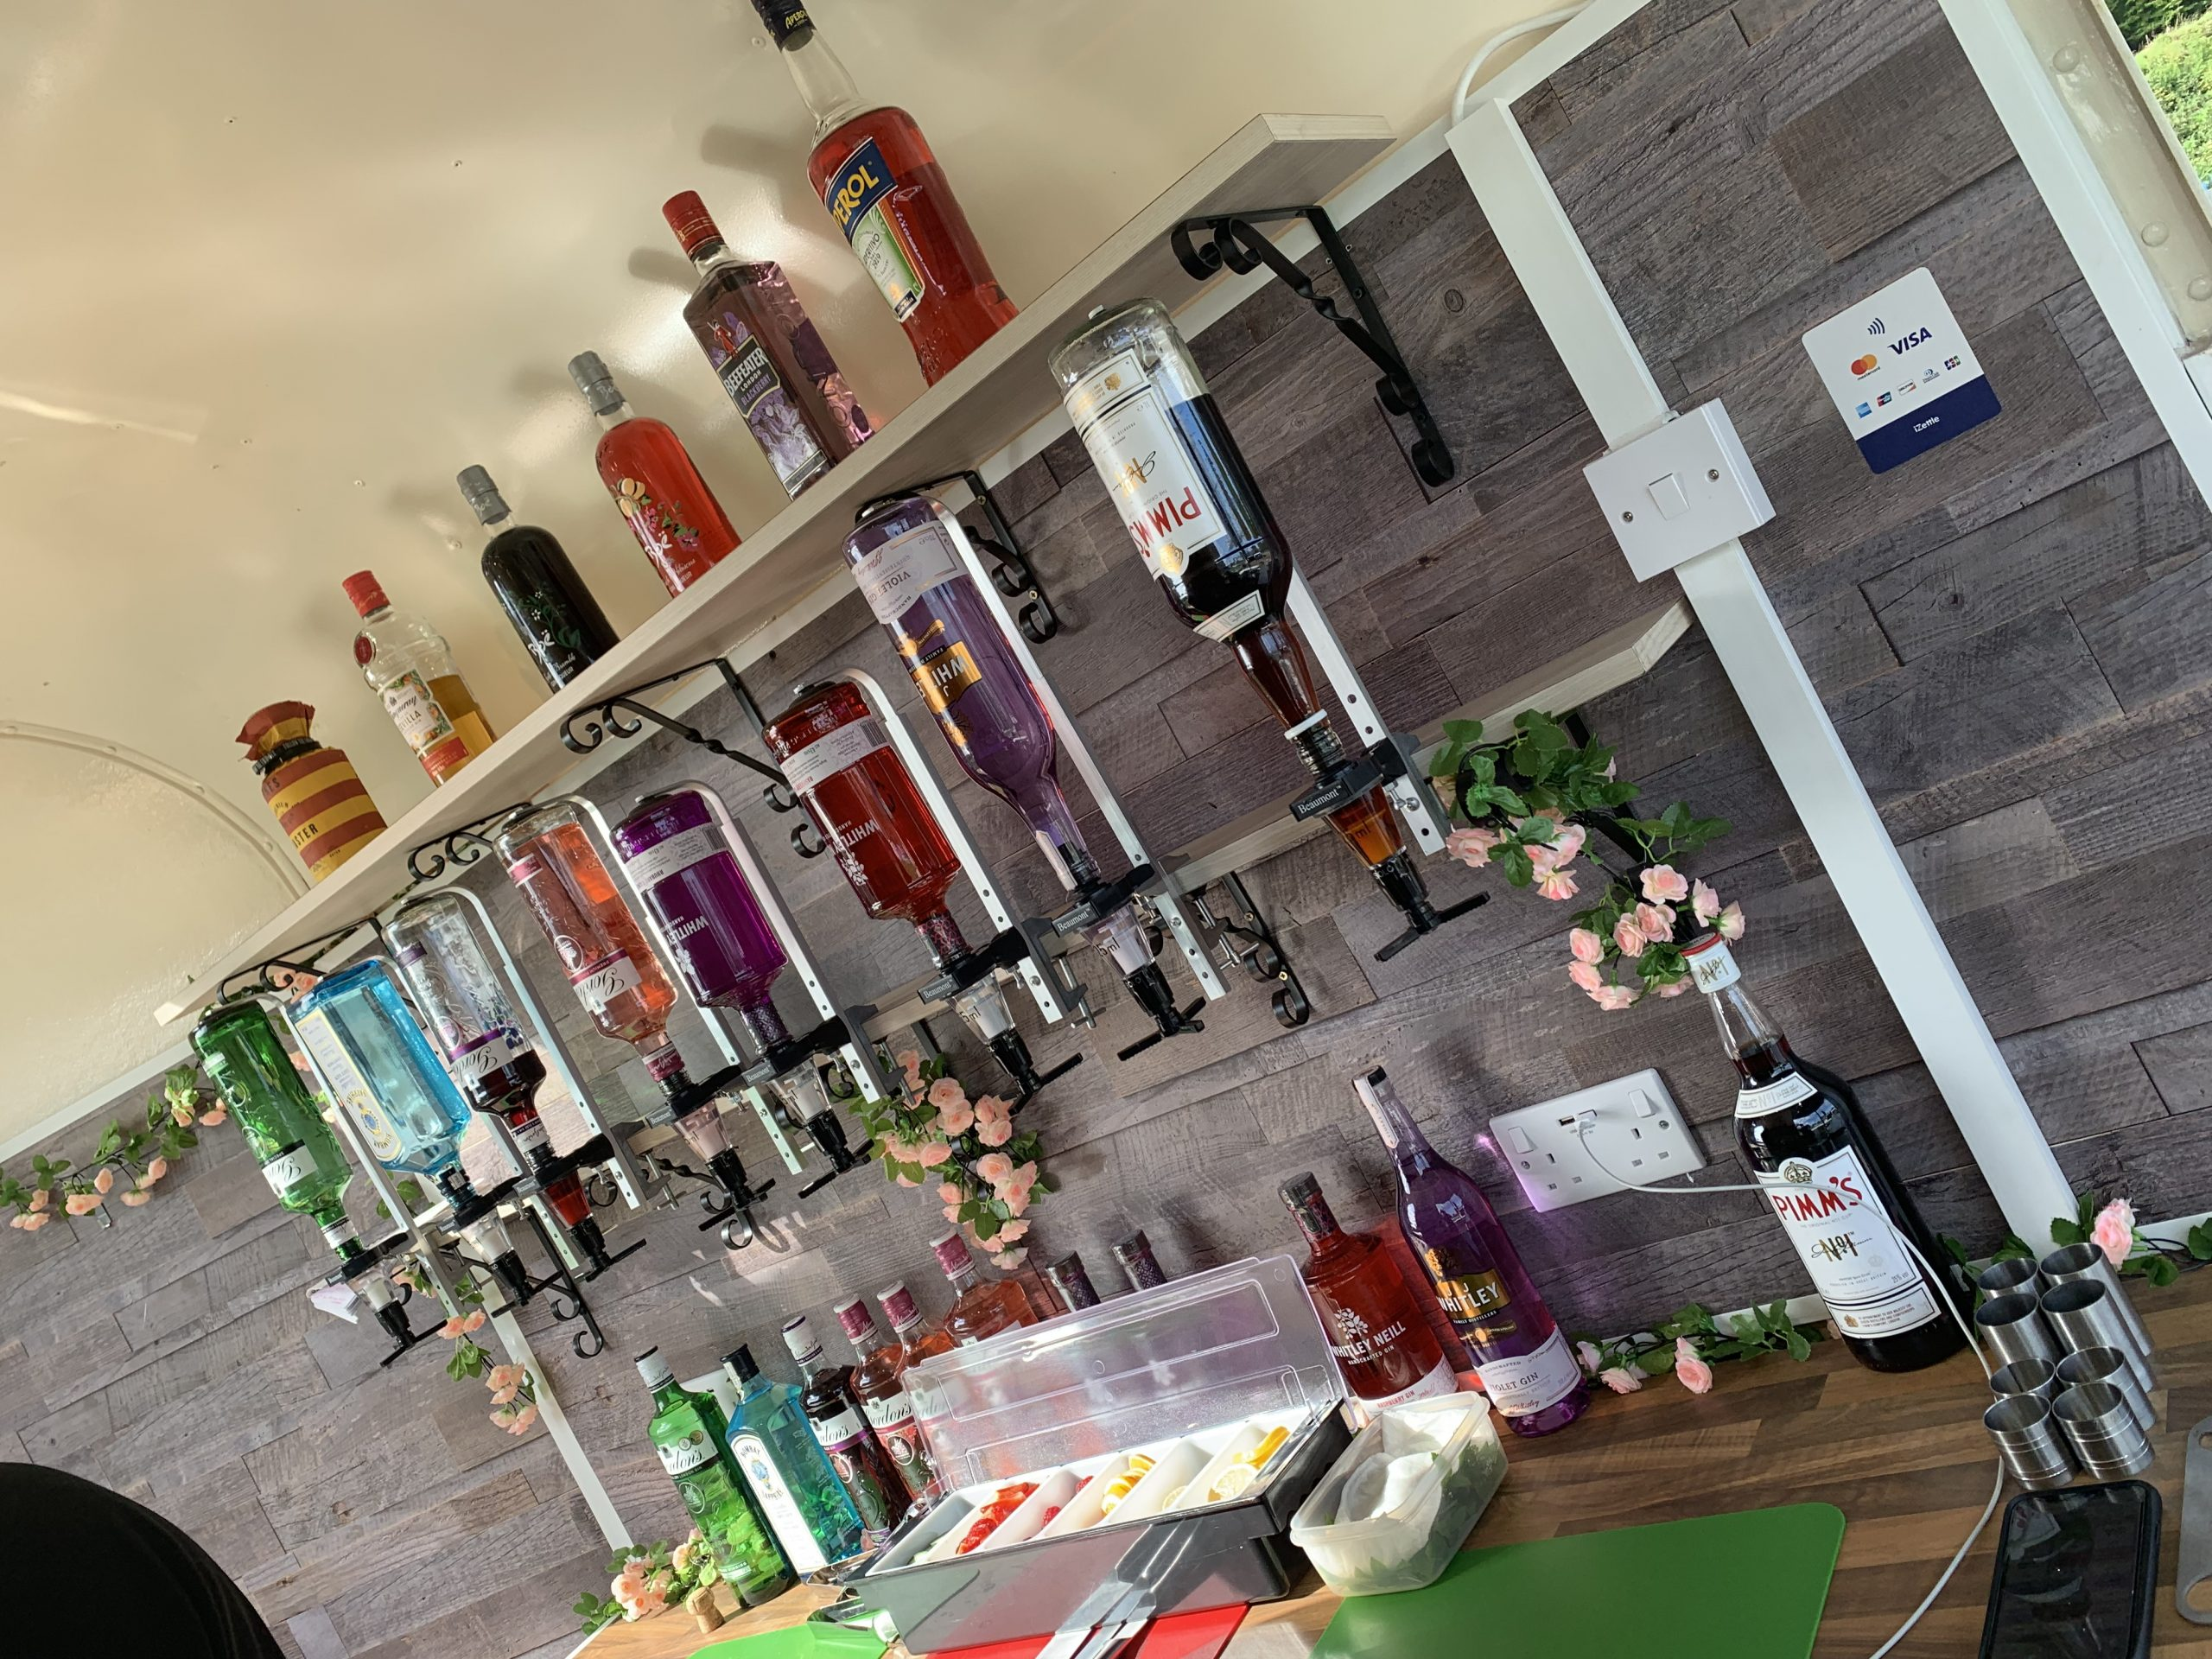 Mobile and pop up bar. Replace horsebox bar with Graham.